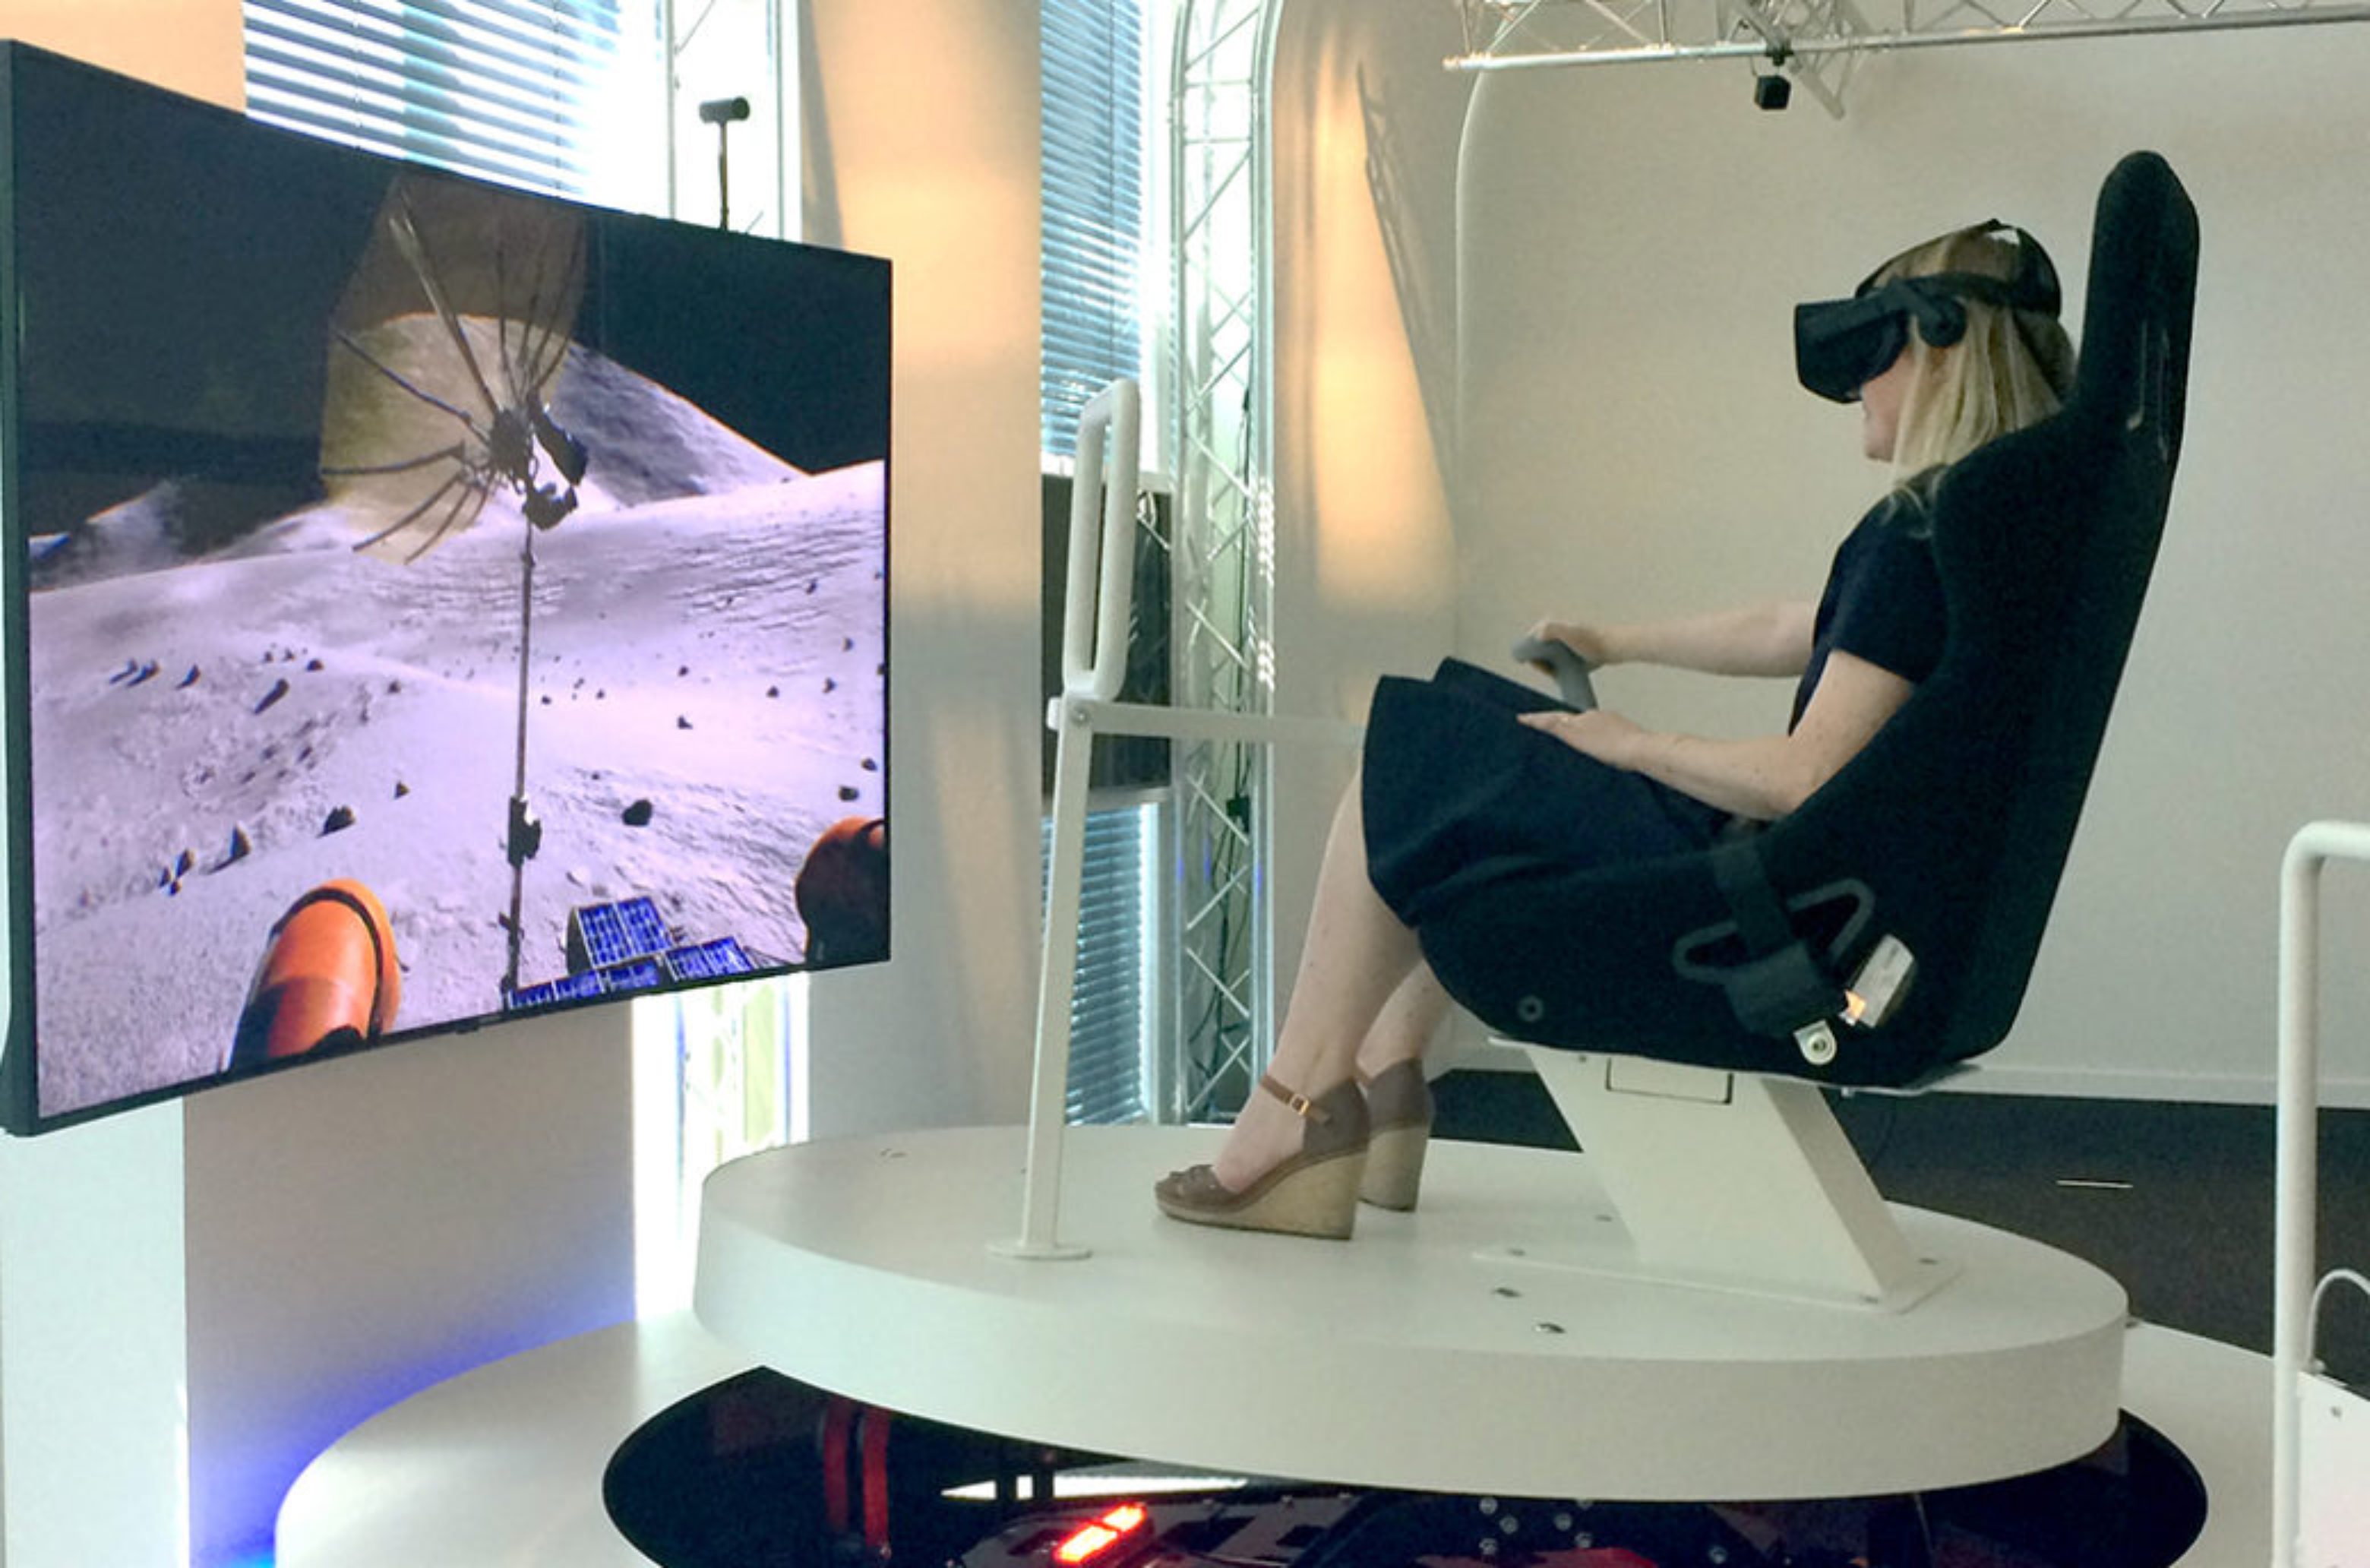 Using the LRV (Lunar Roving Vehicle) simulator with the Oculus Rift